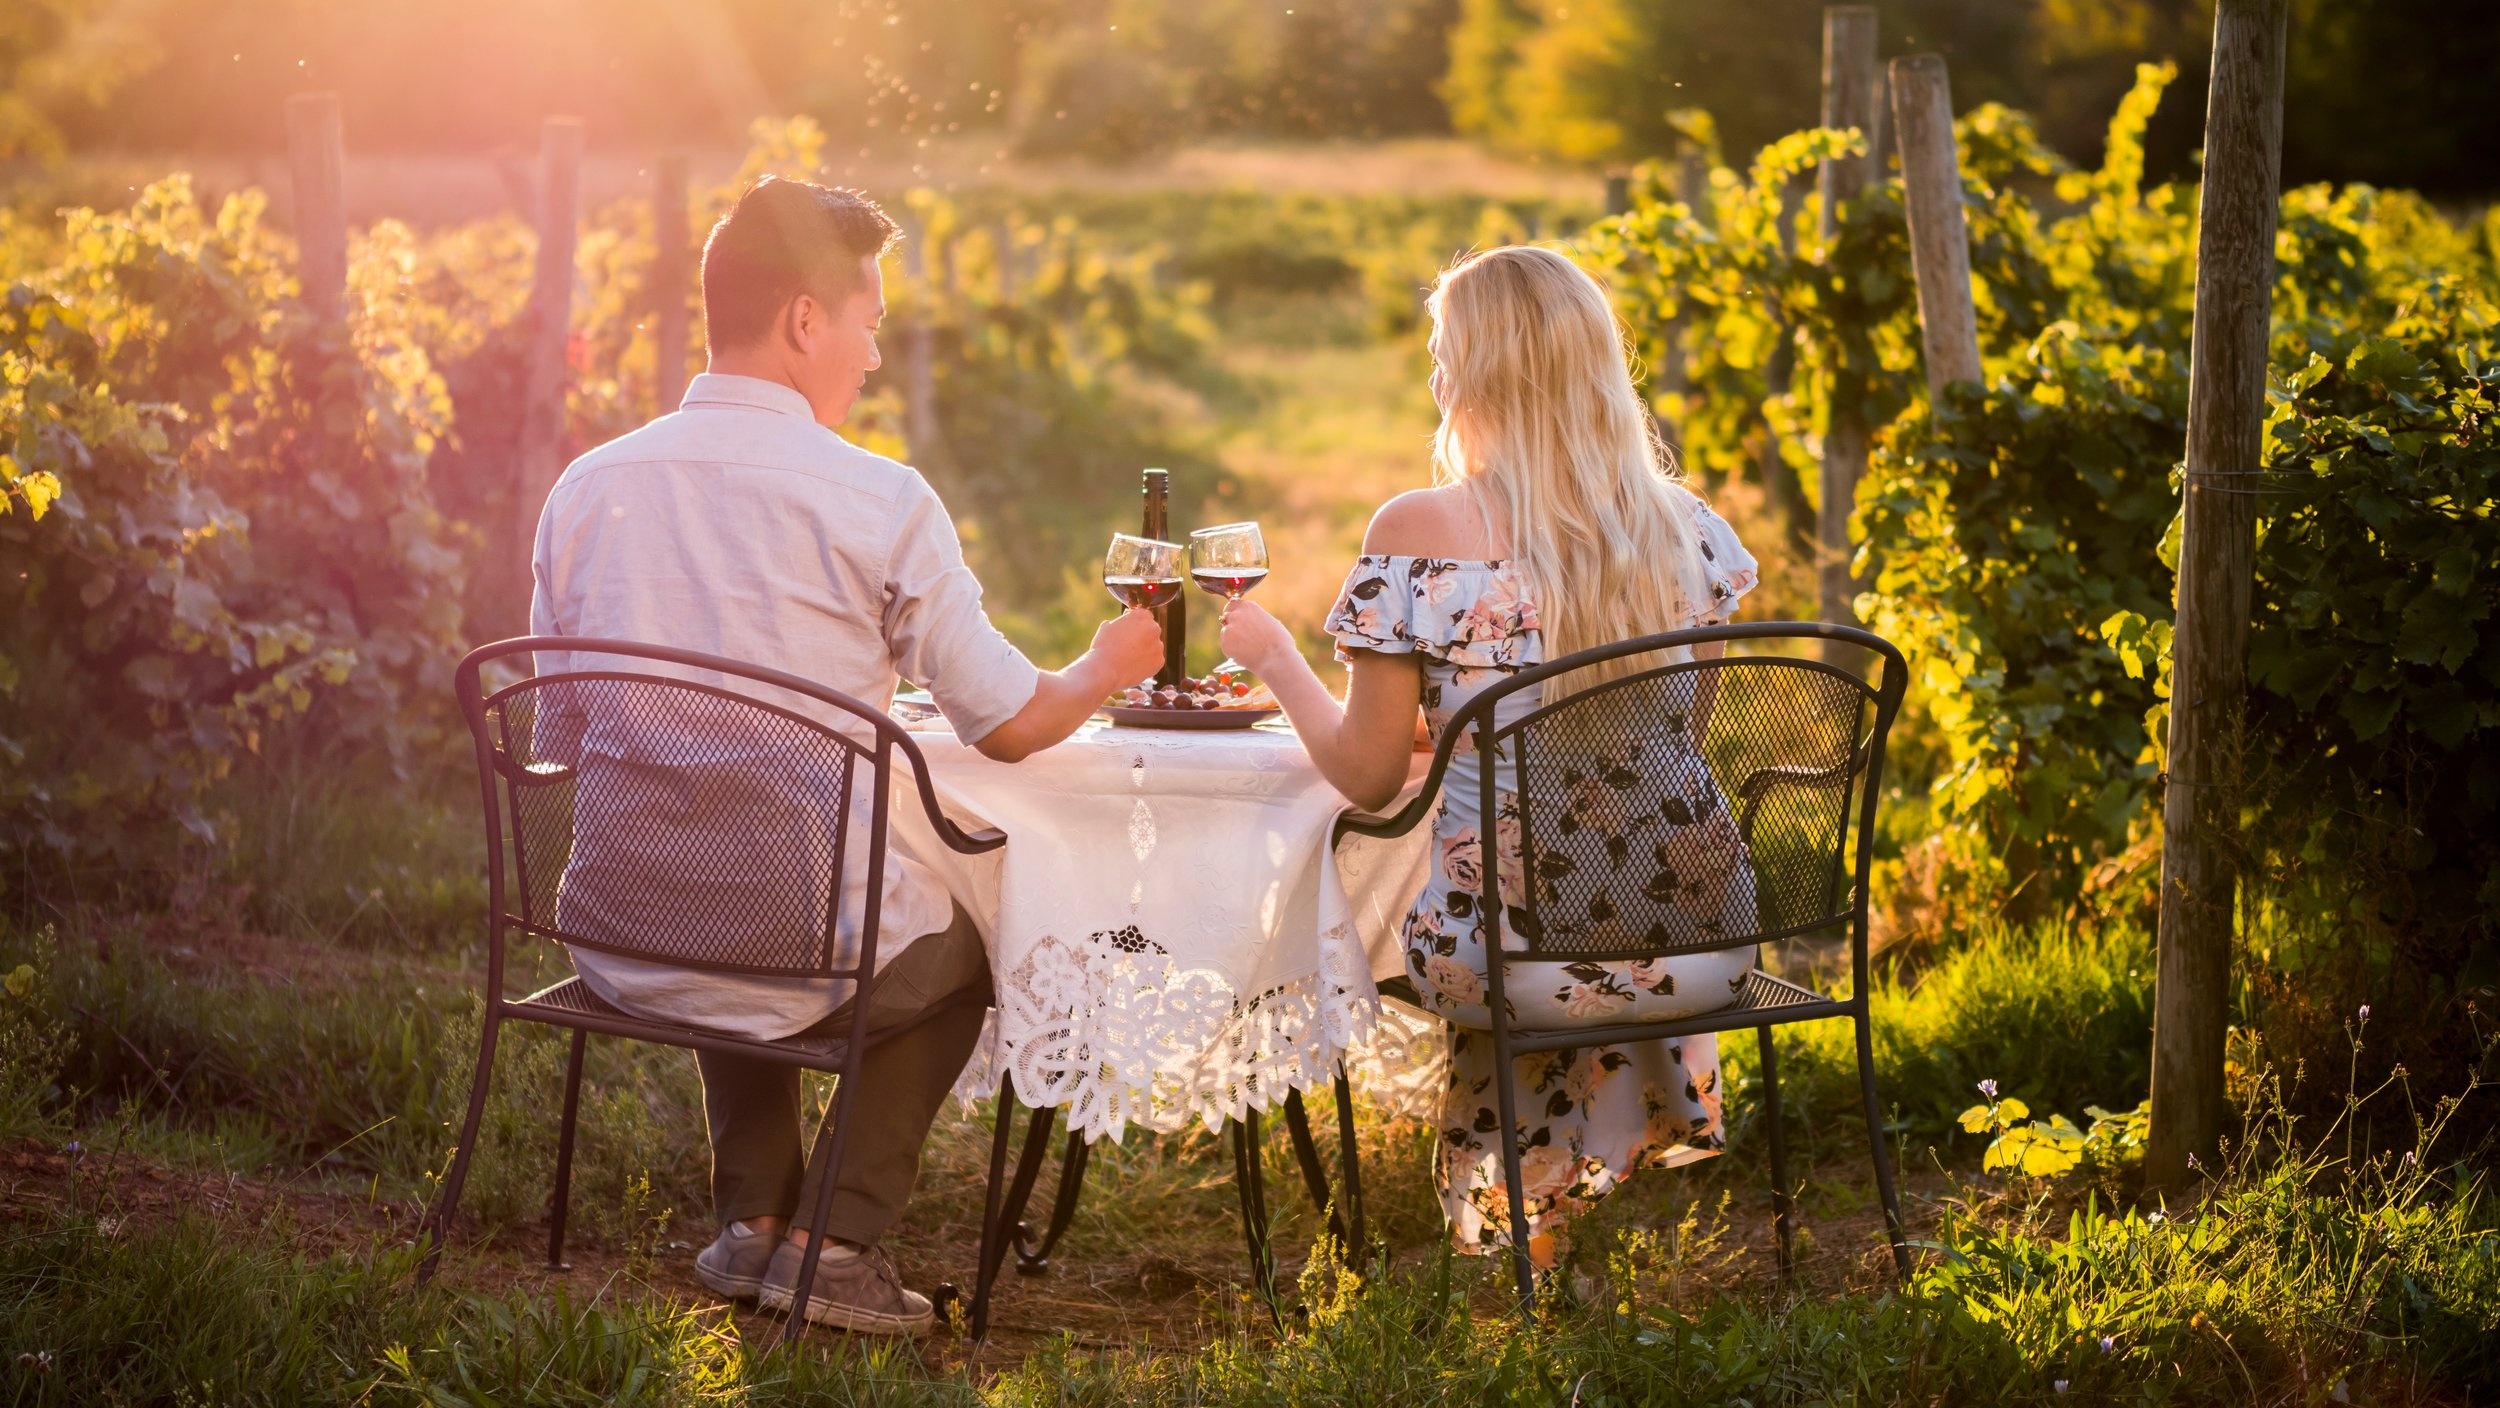 Charlottesville wine tours - Reserve your wine tour today!